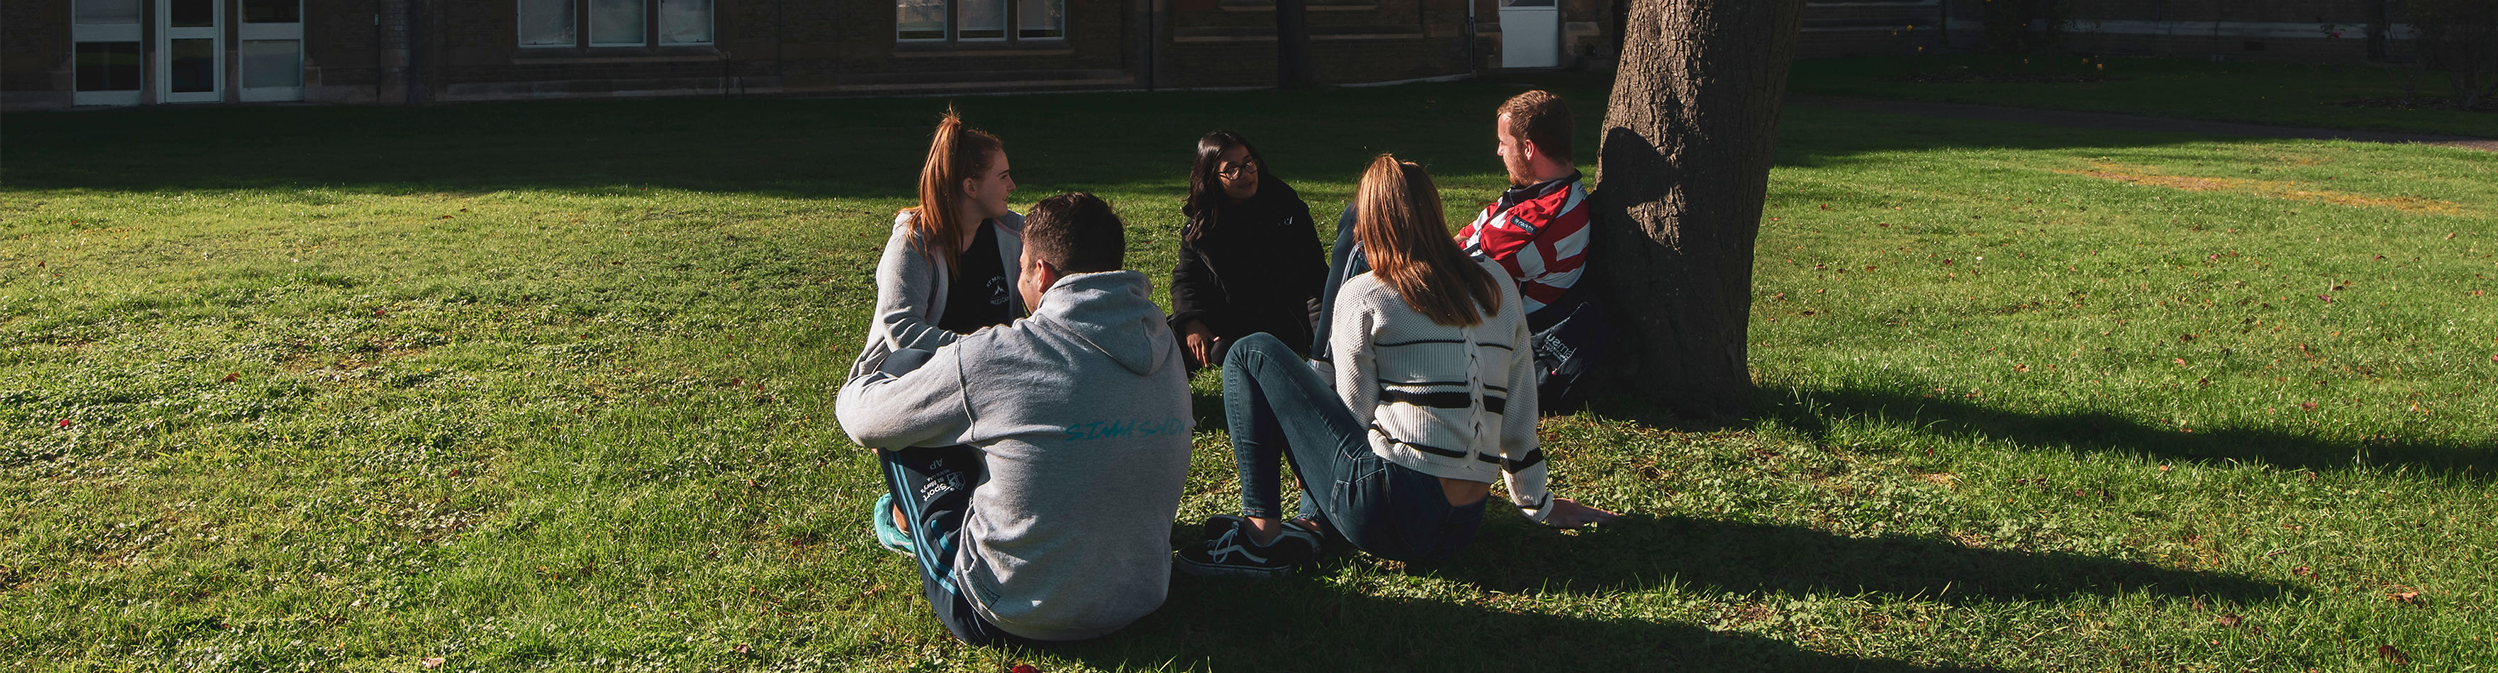 A picture of some students sitting and chatting on a sunny day on our campus